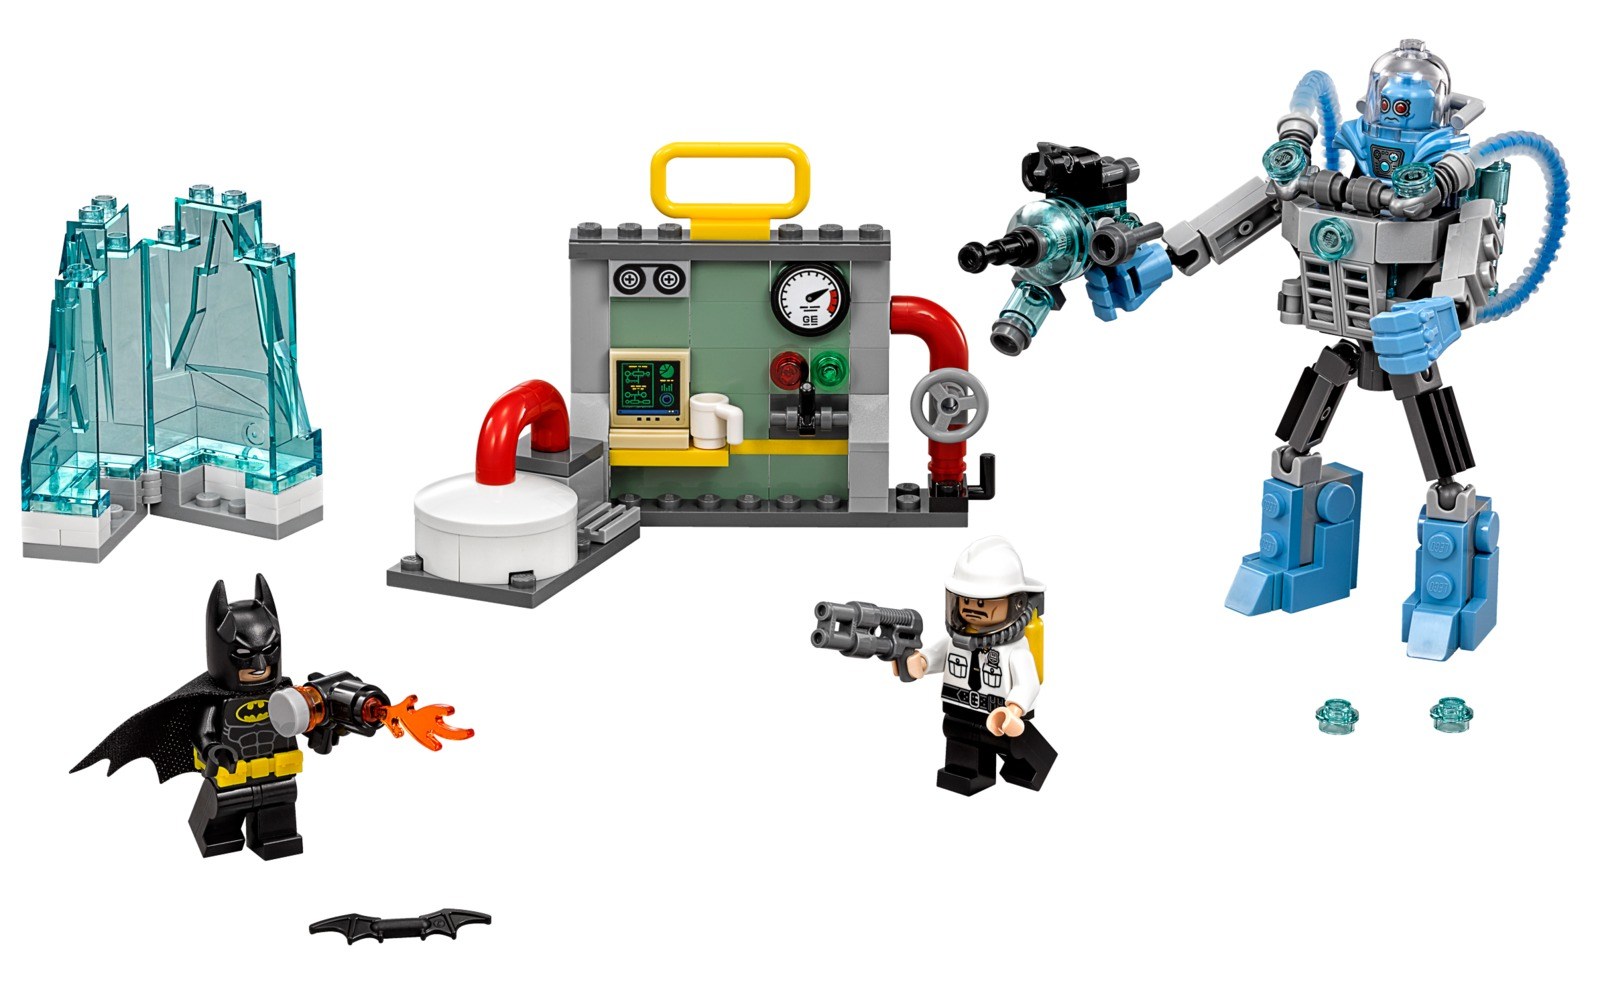 LEGO Batman Movie - Mr. Freeze Ice Attack (70901) image